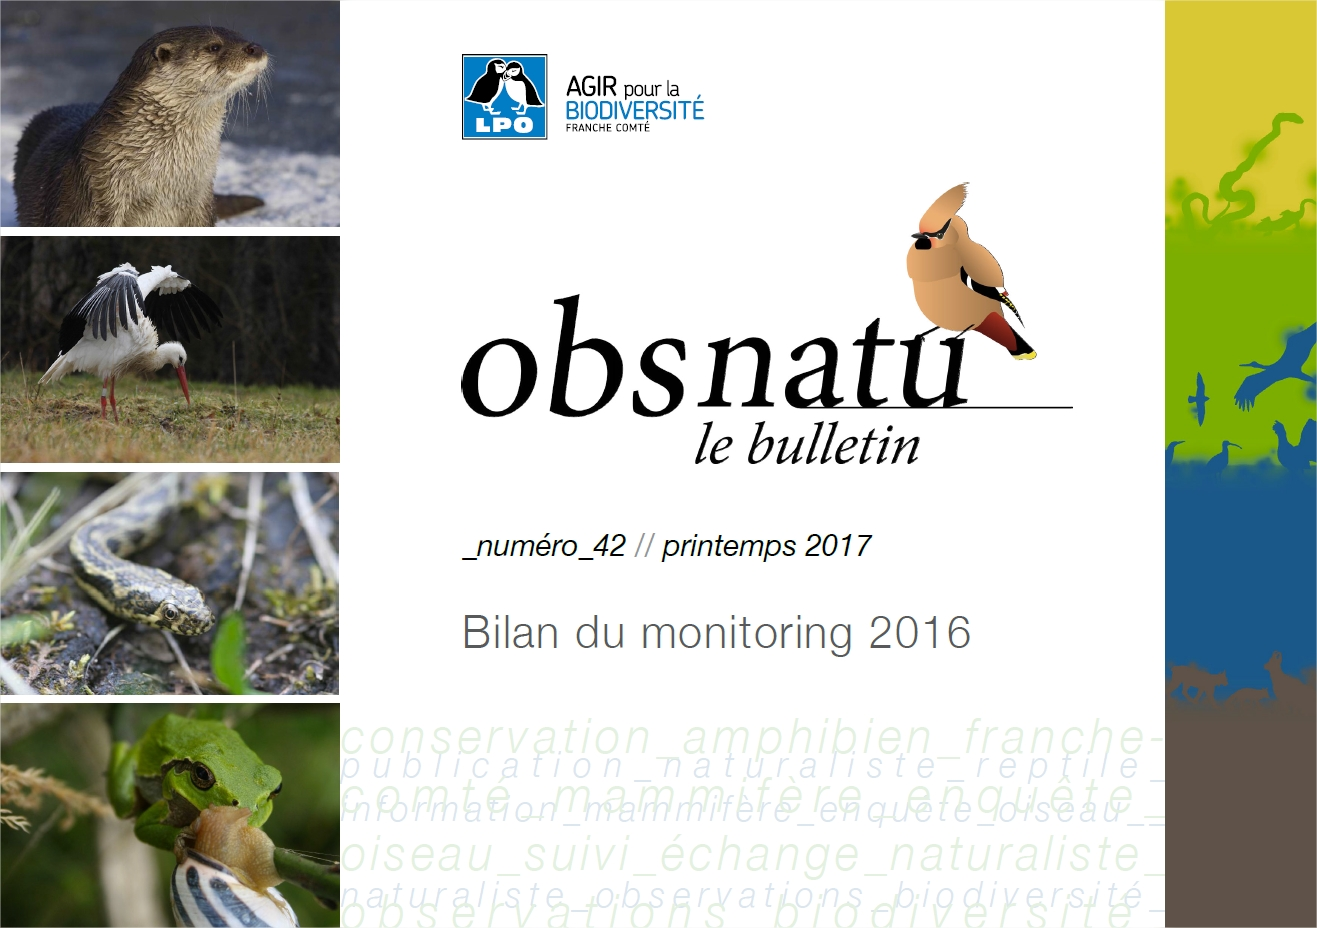 http://files.biolovision.net/franche-comte.lpo.fr/userfiles/publications/Obsnatubulls/obsnatu42printemps2017-monitoring2016vf-copie.pdf